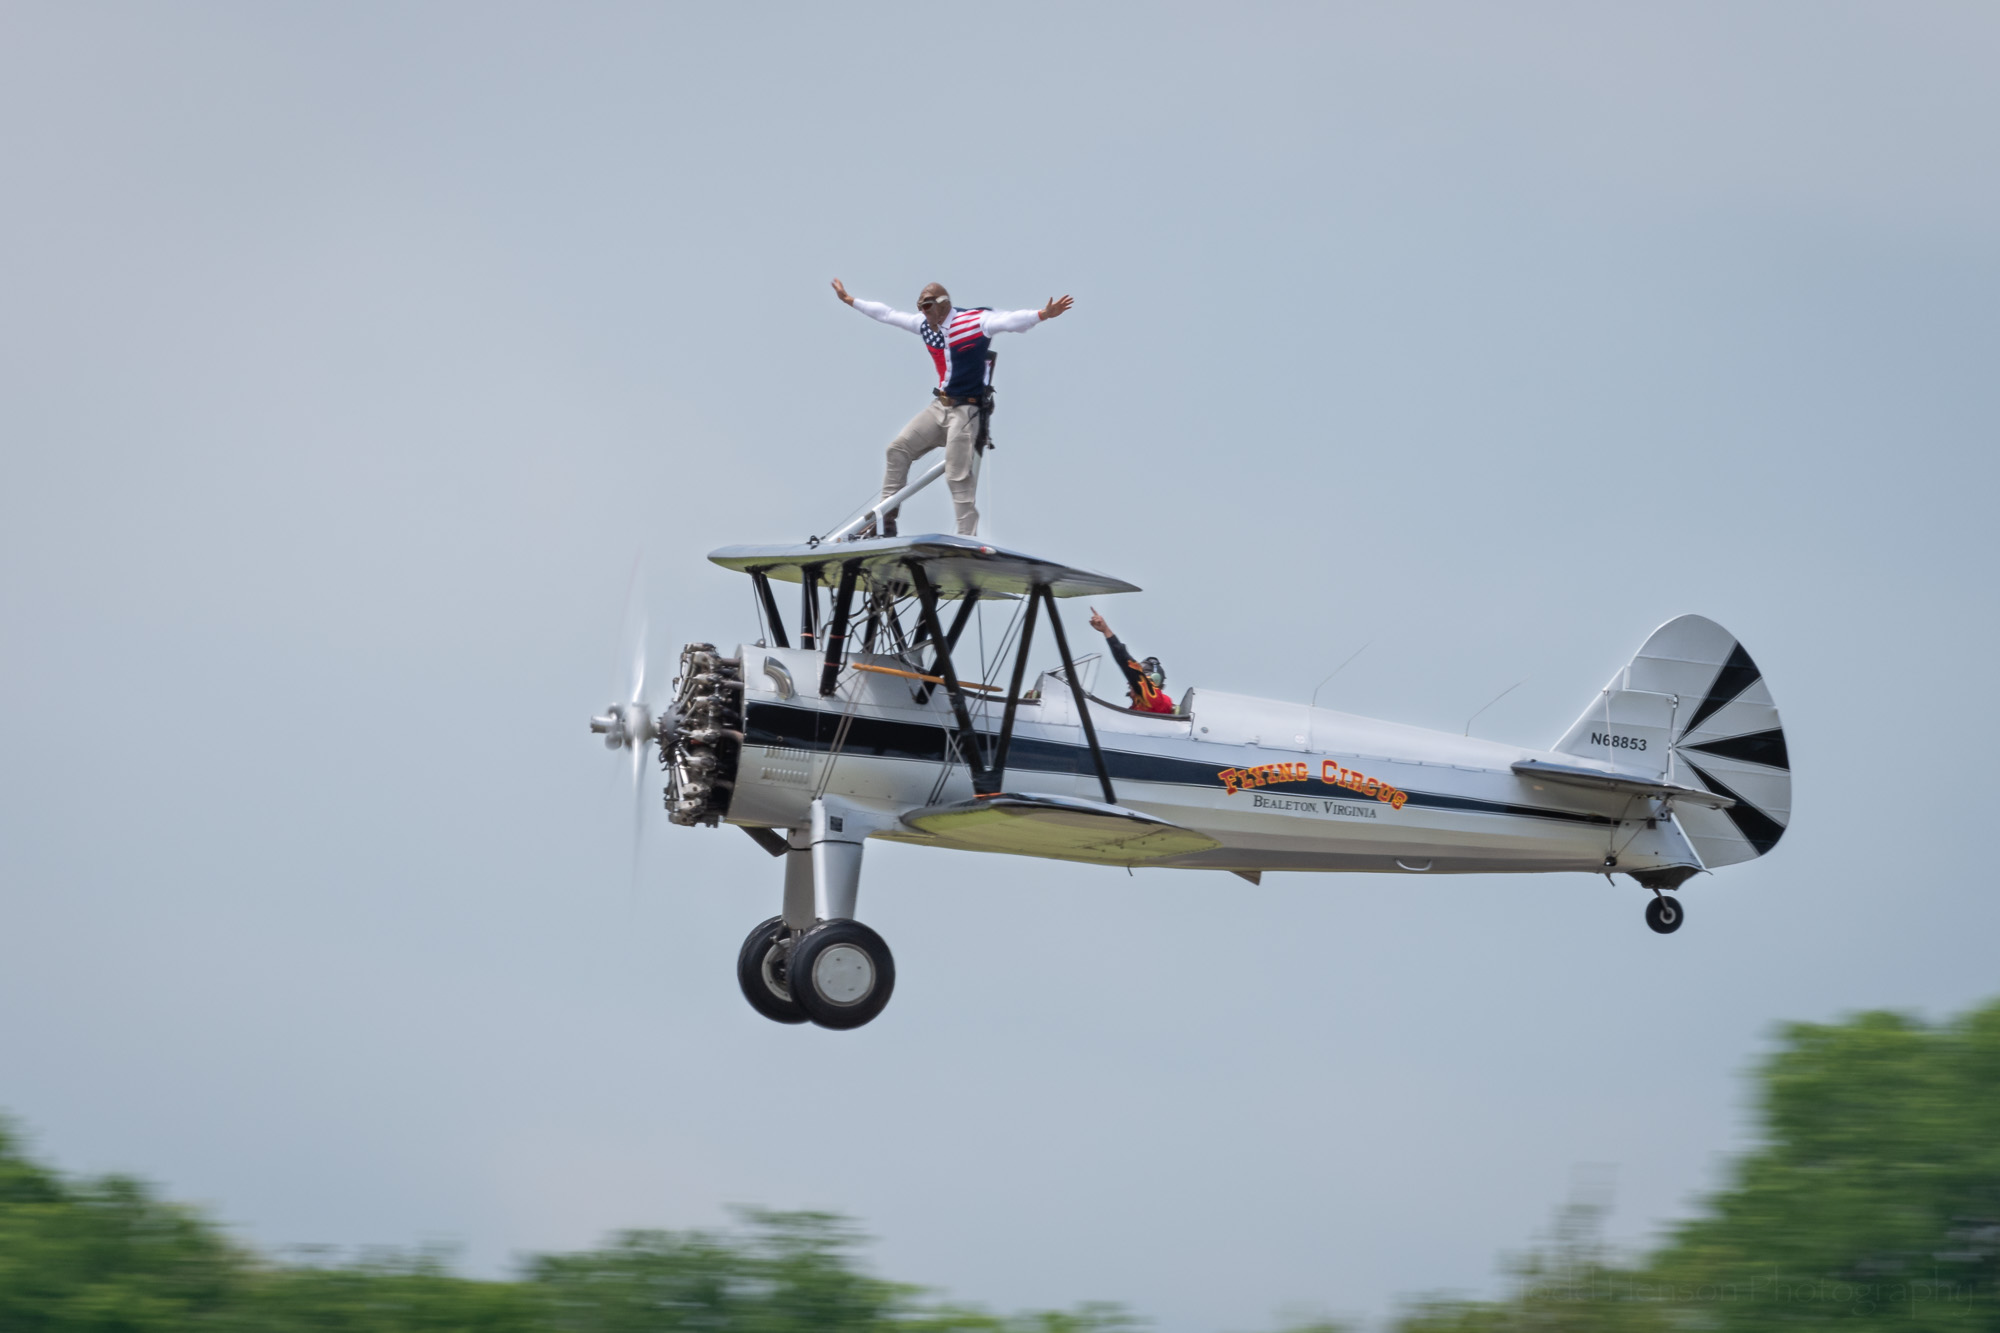 The Bealeton Flying Circus Wingwalkers